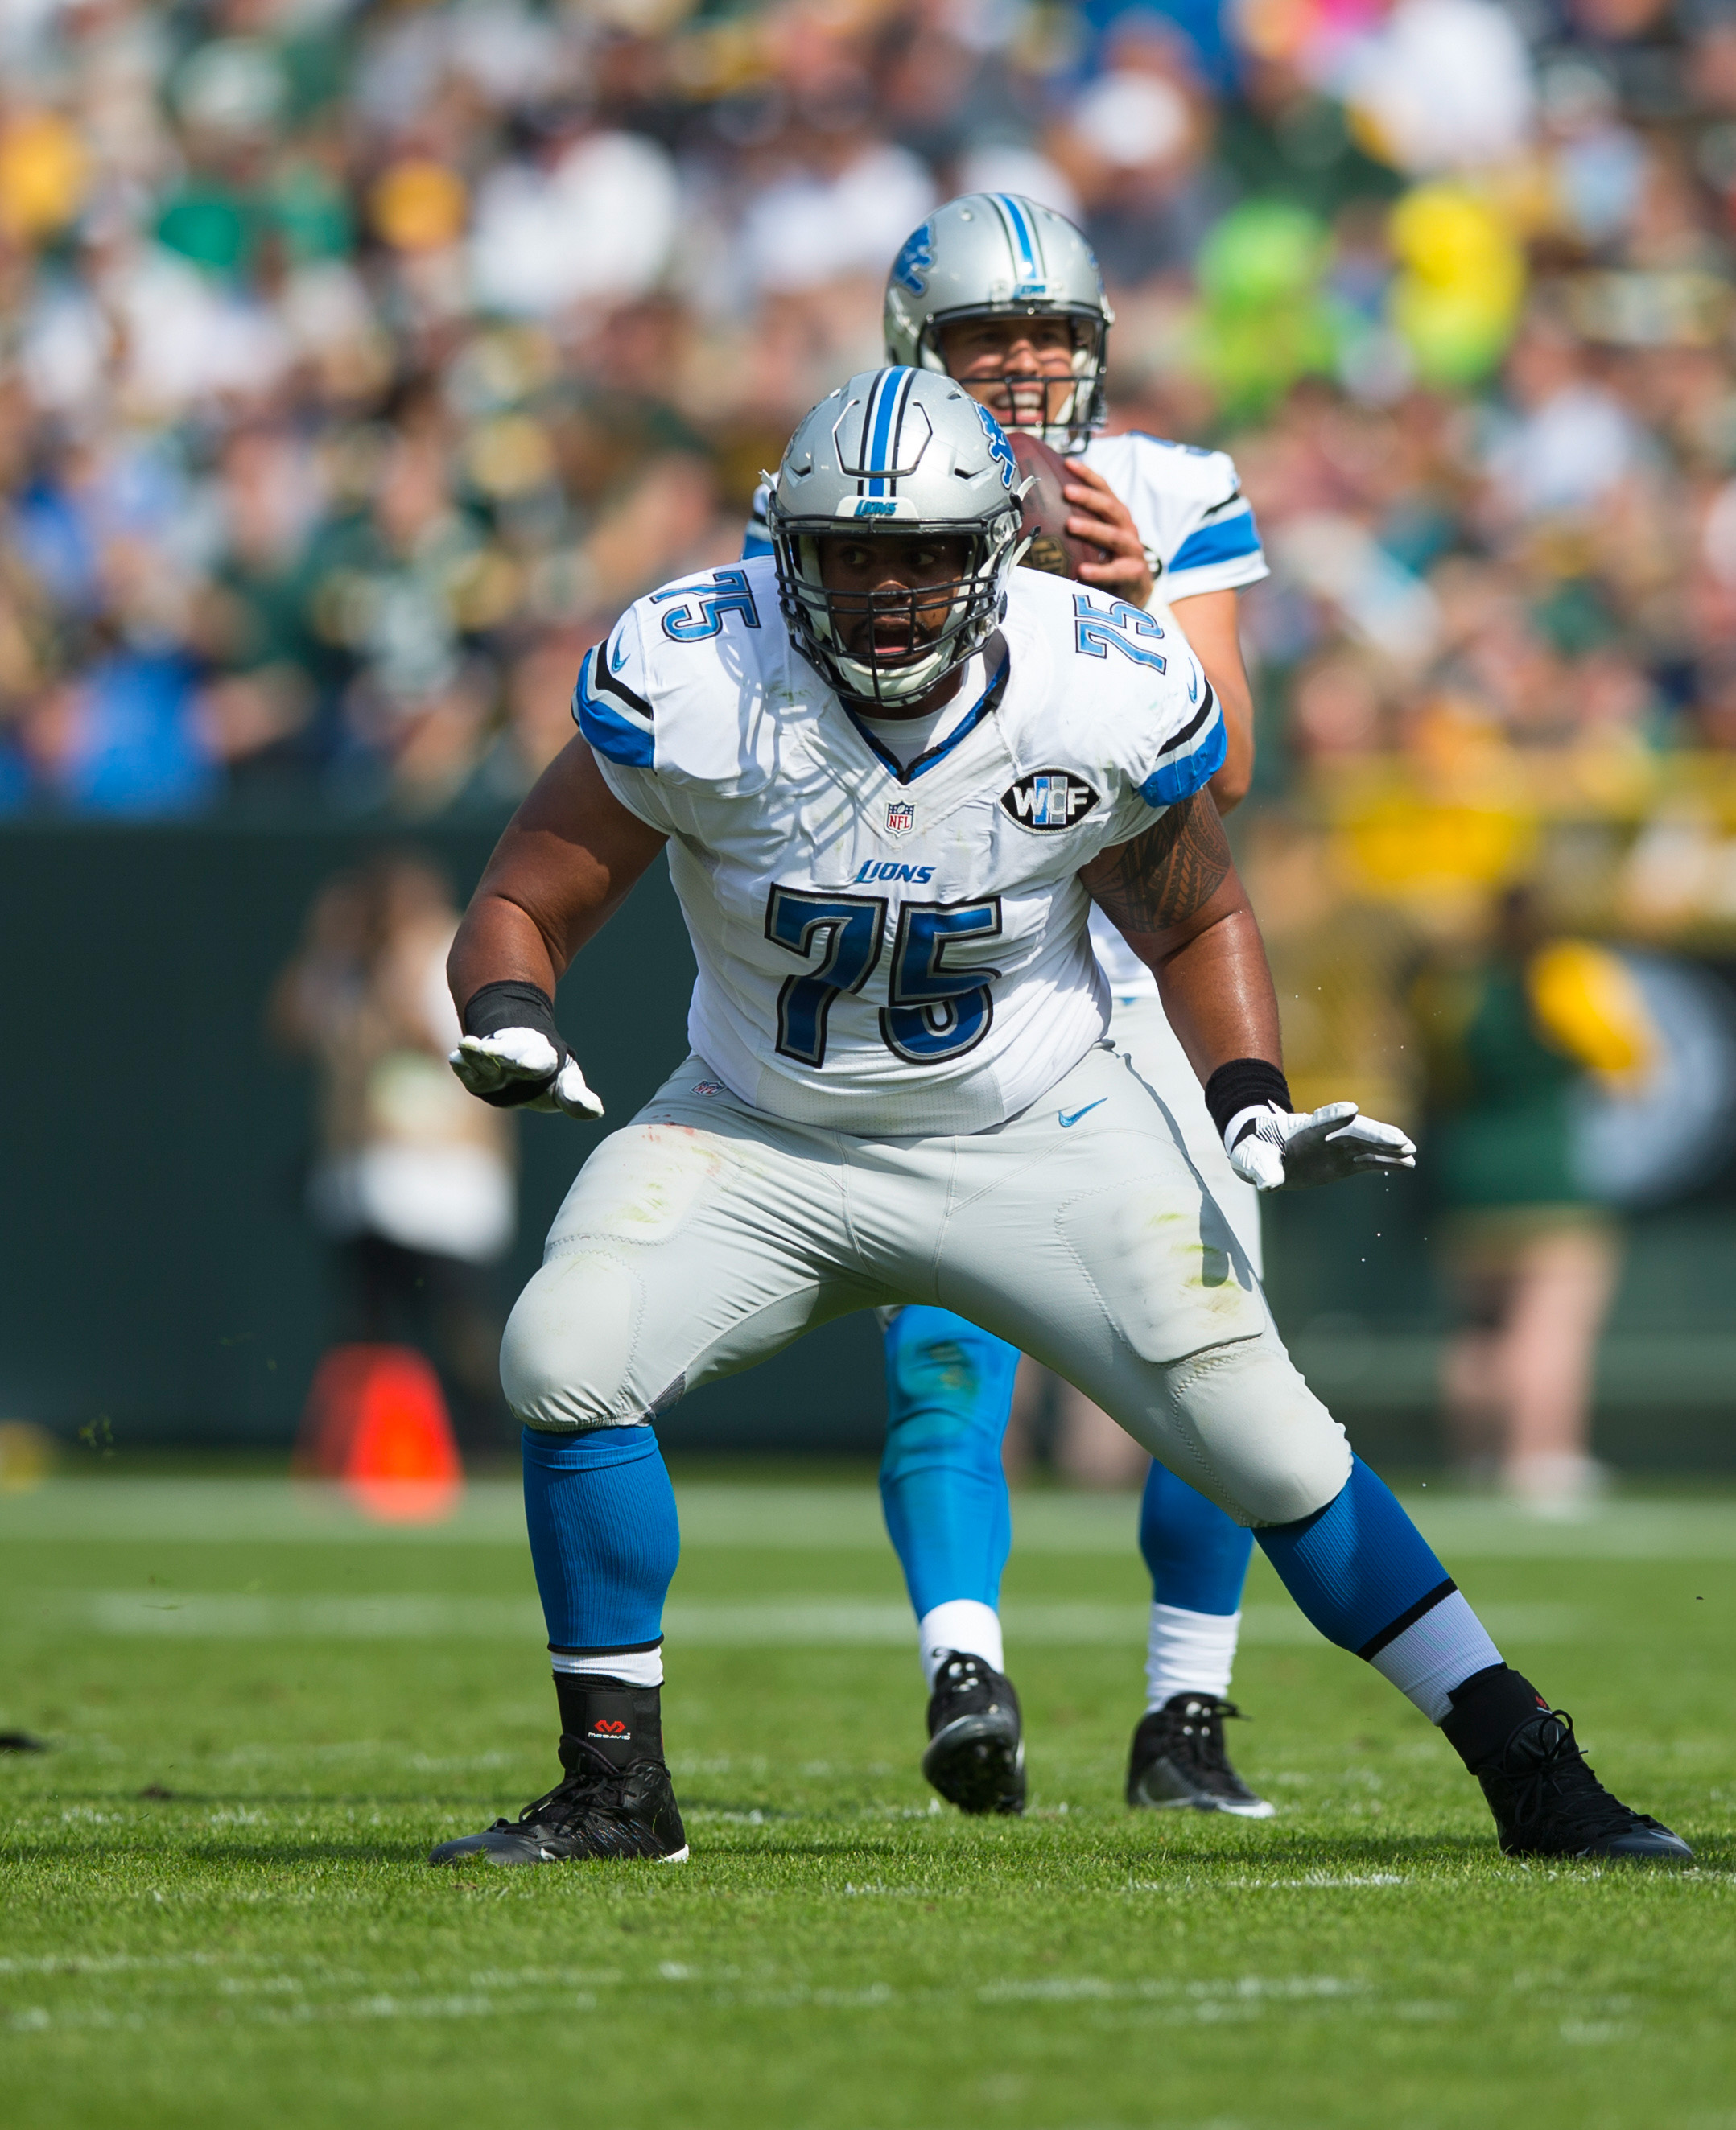 Former Auburn DL Nick Fairley signs new National Football League deal